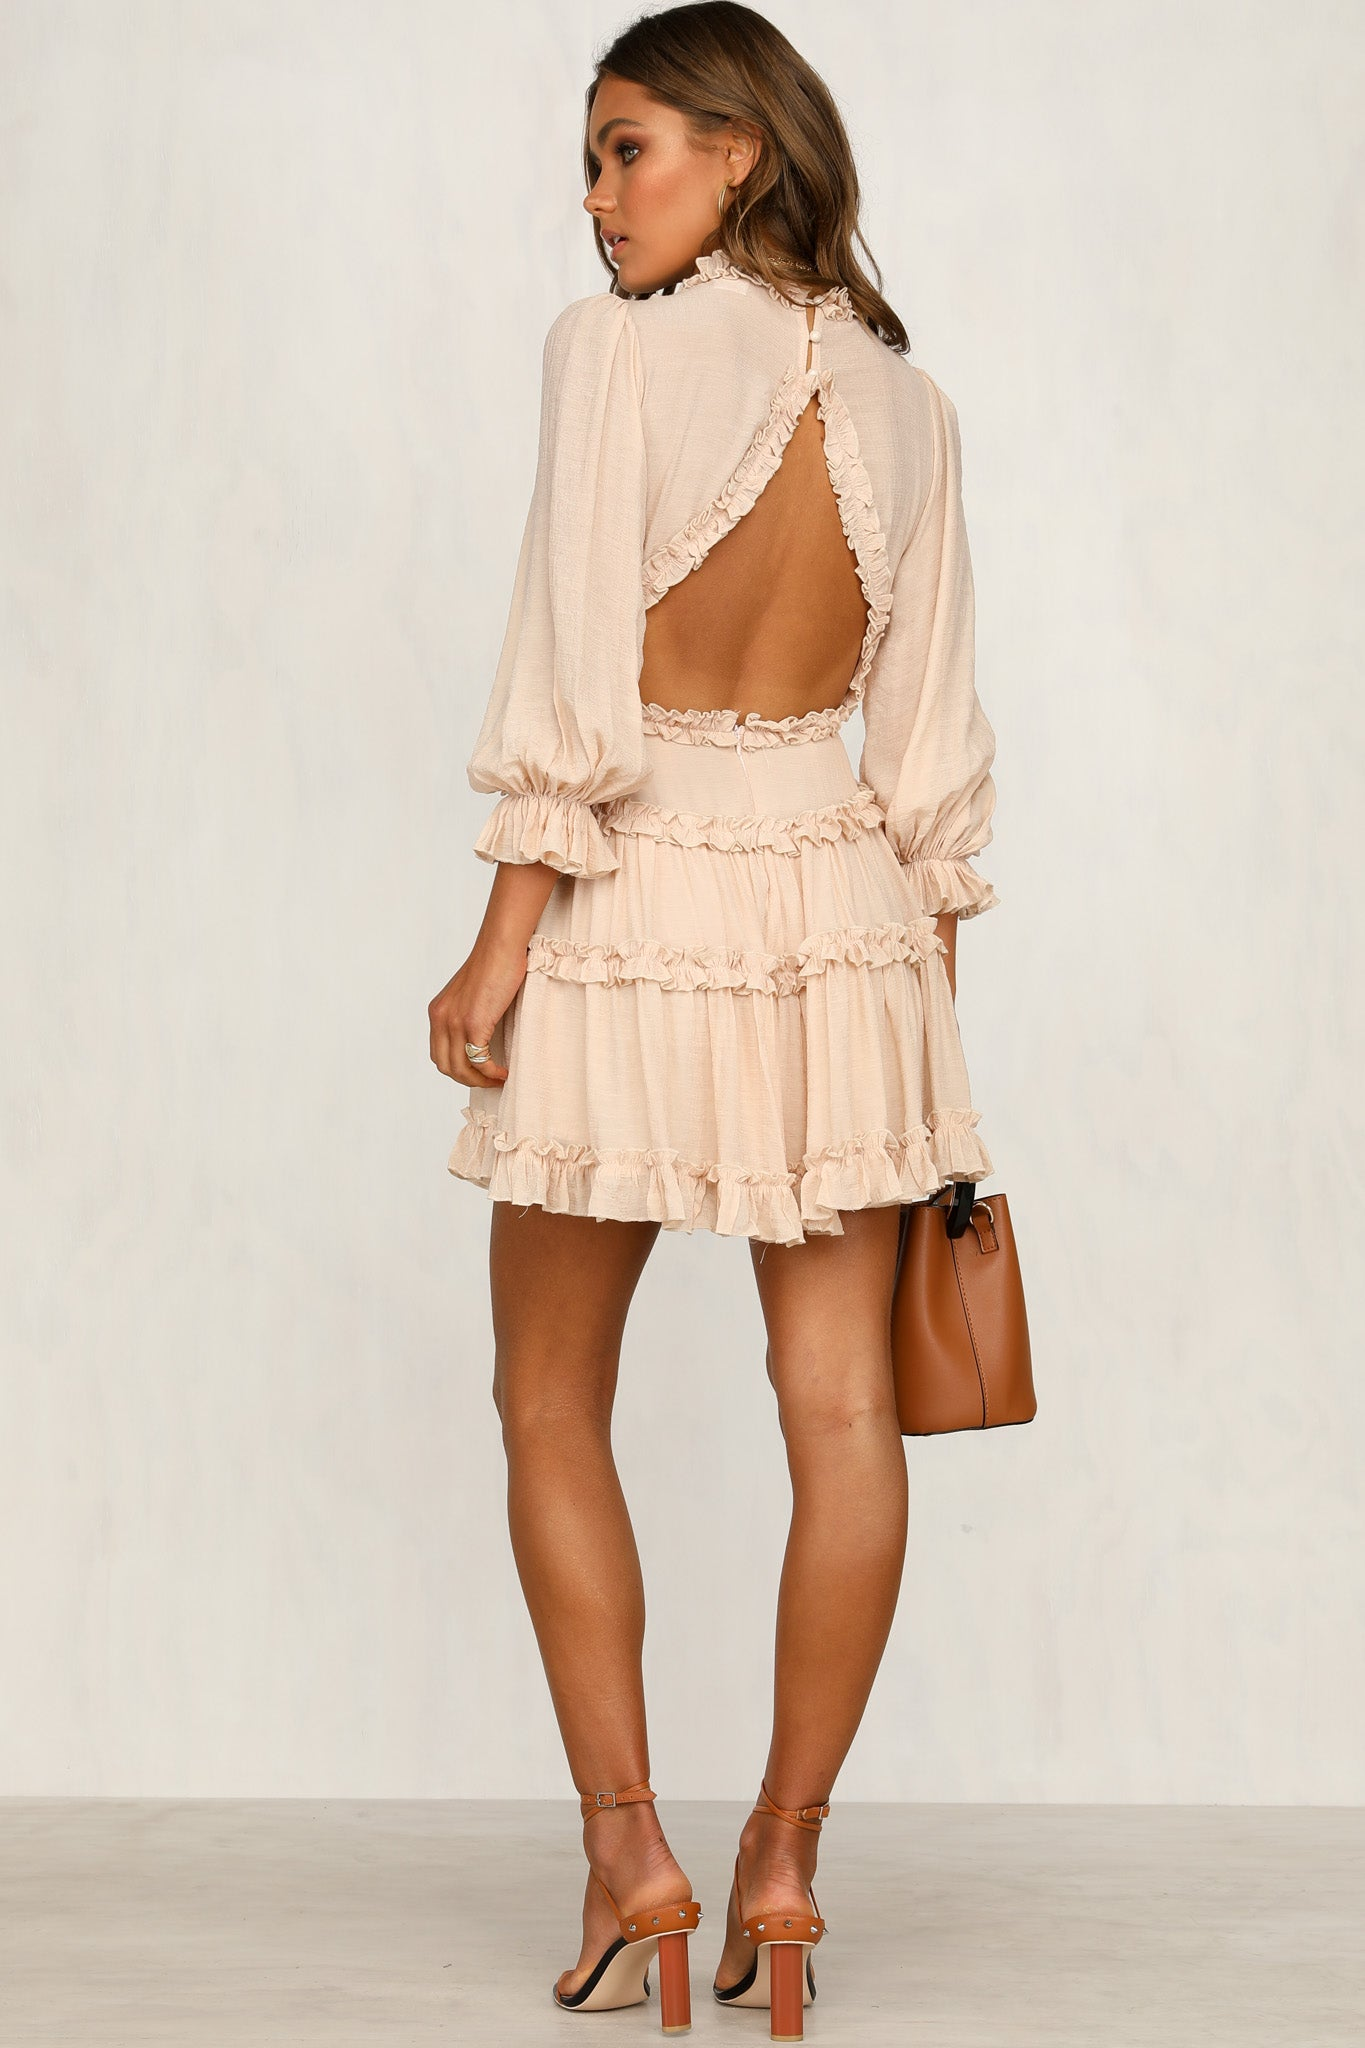 Could Be You Dress (Beige)